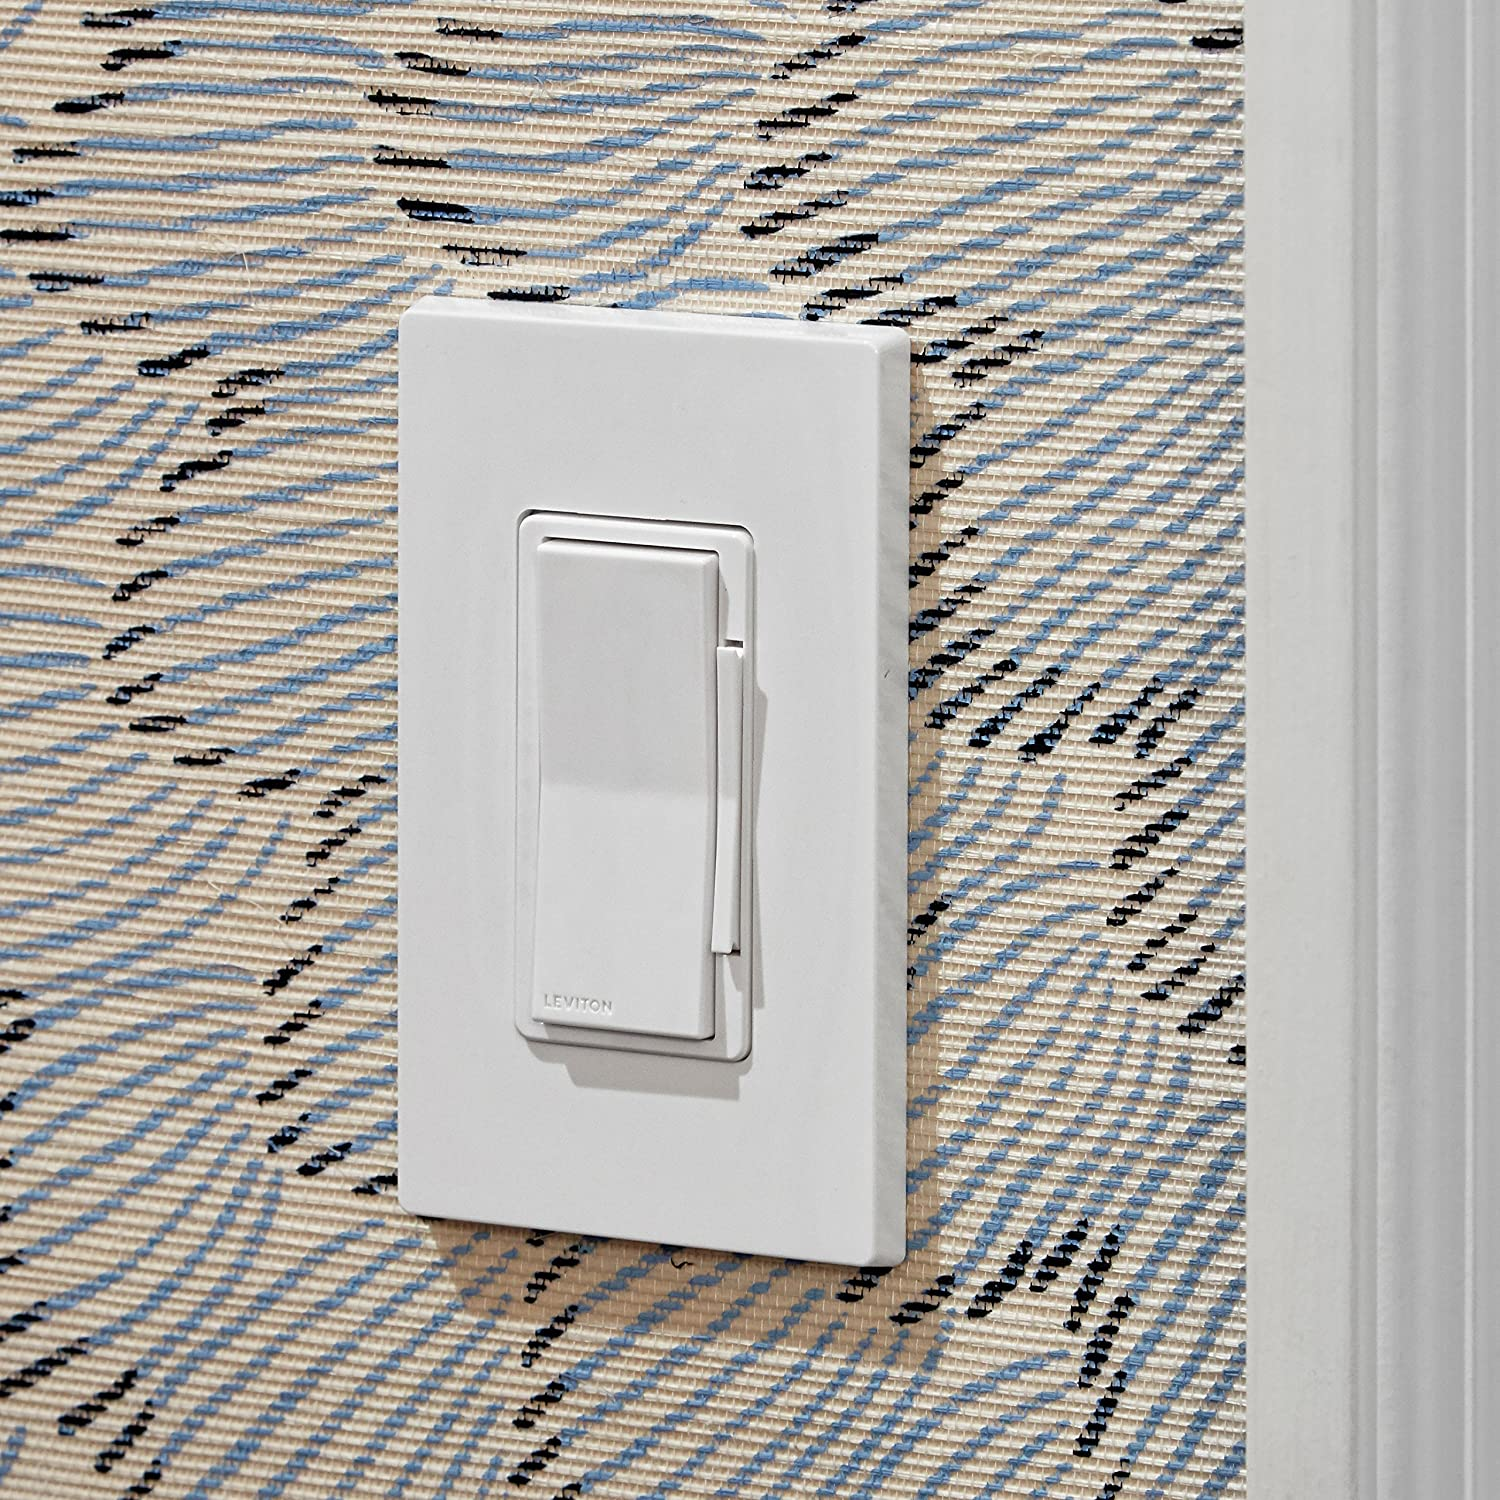 Leviton DW15P-1BW Decora Smart Wi-Fi Mini Plug-In Outlet Works with Alexa Google Assistant and Nest No Hub Required